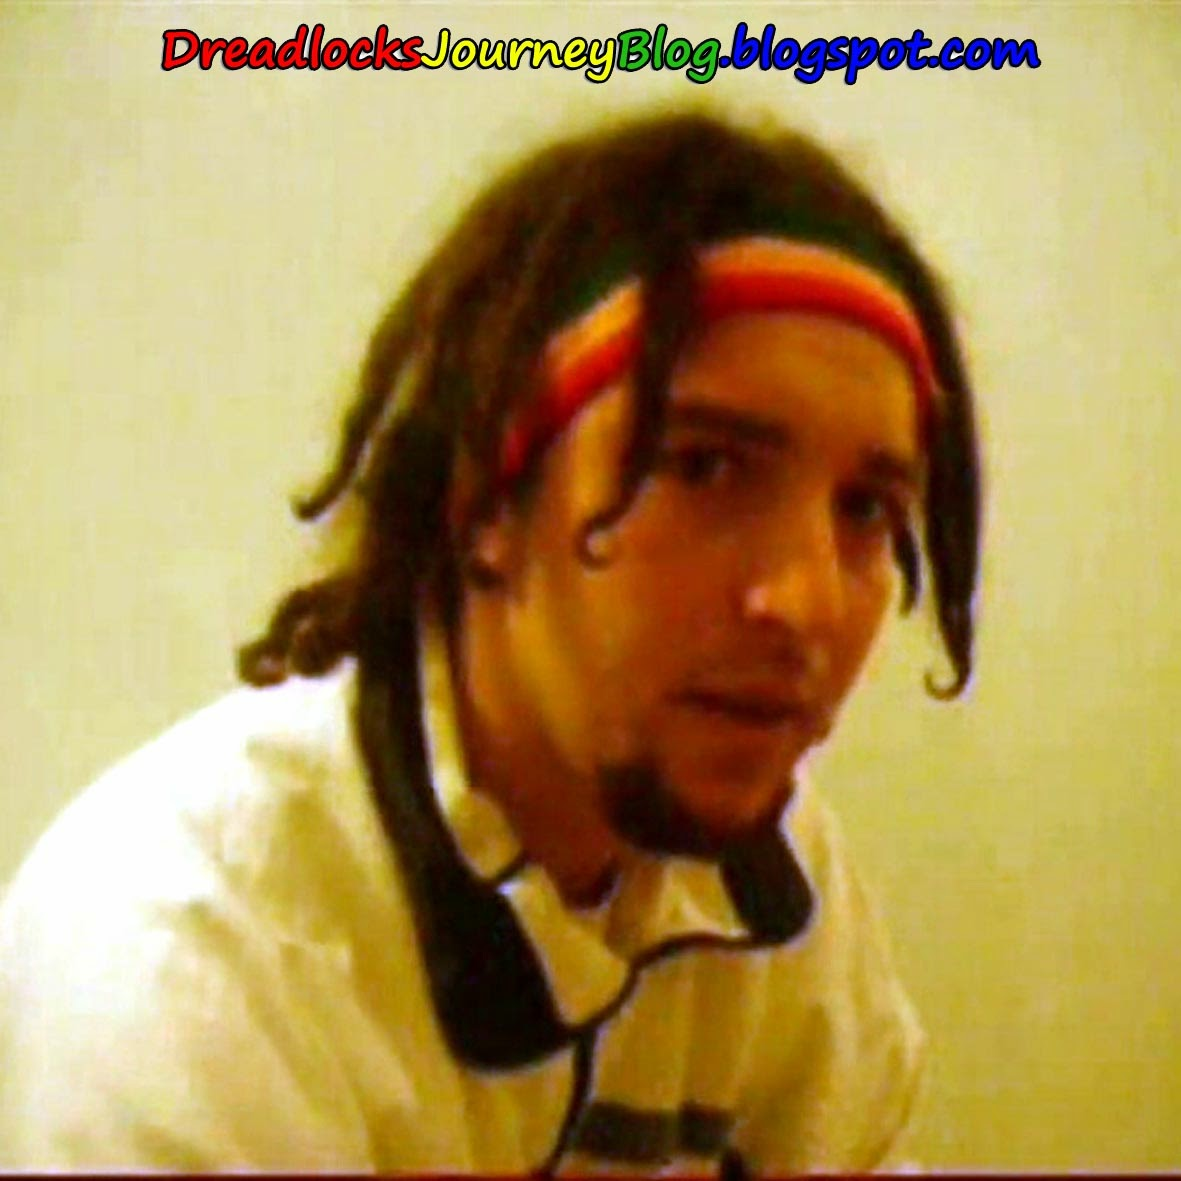 how to get clean dreads